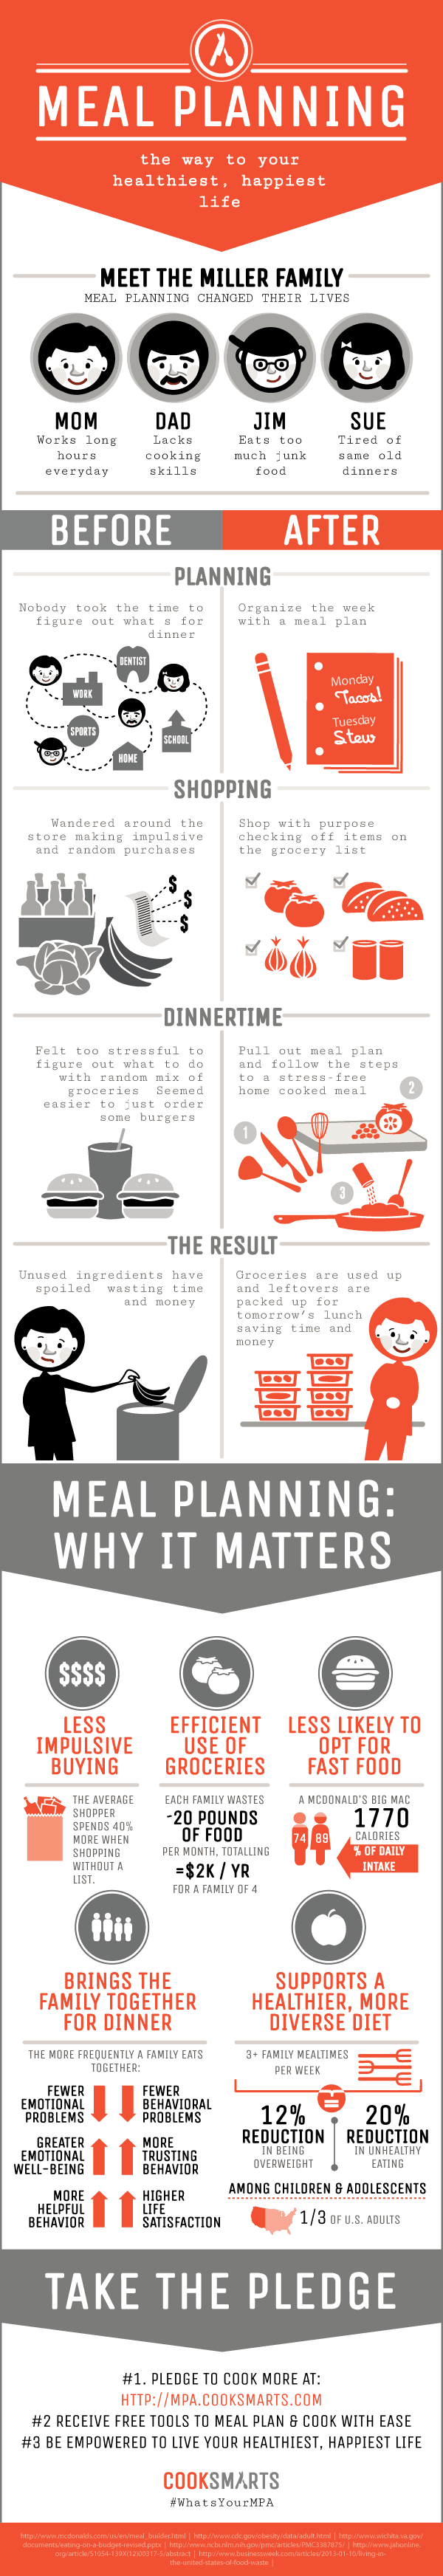 meal planning matters infotgraphic